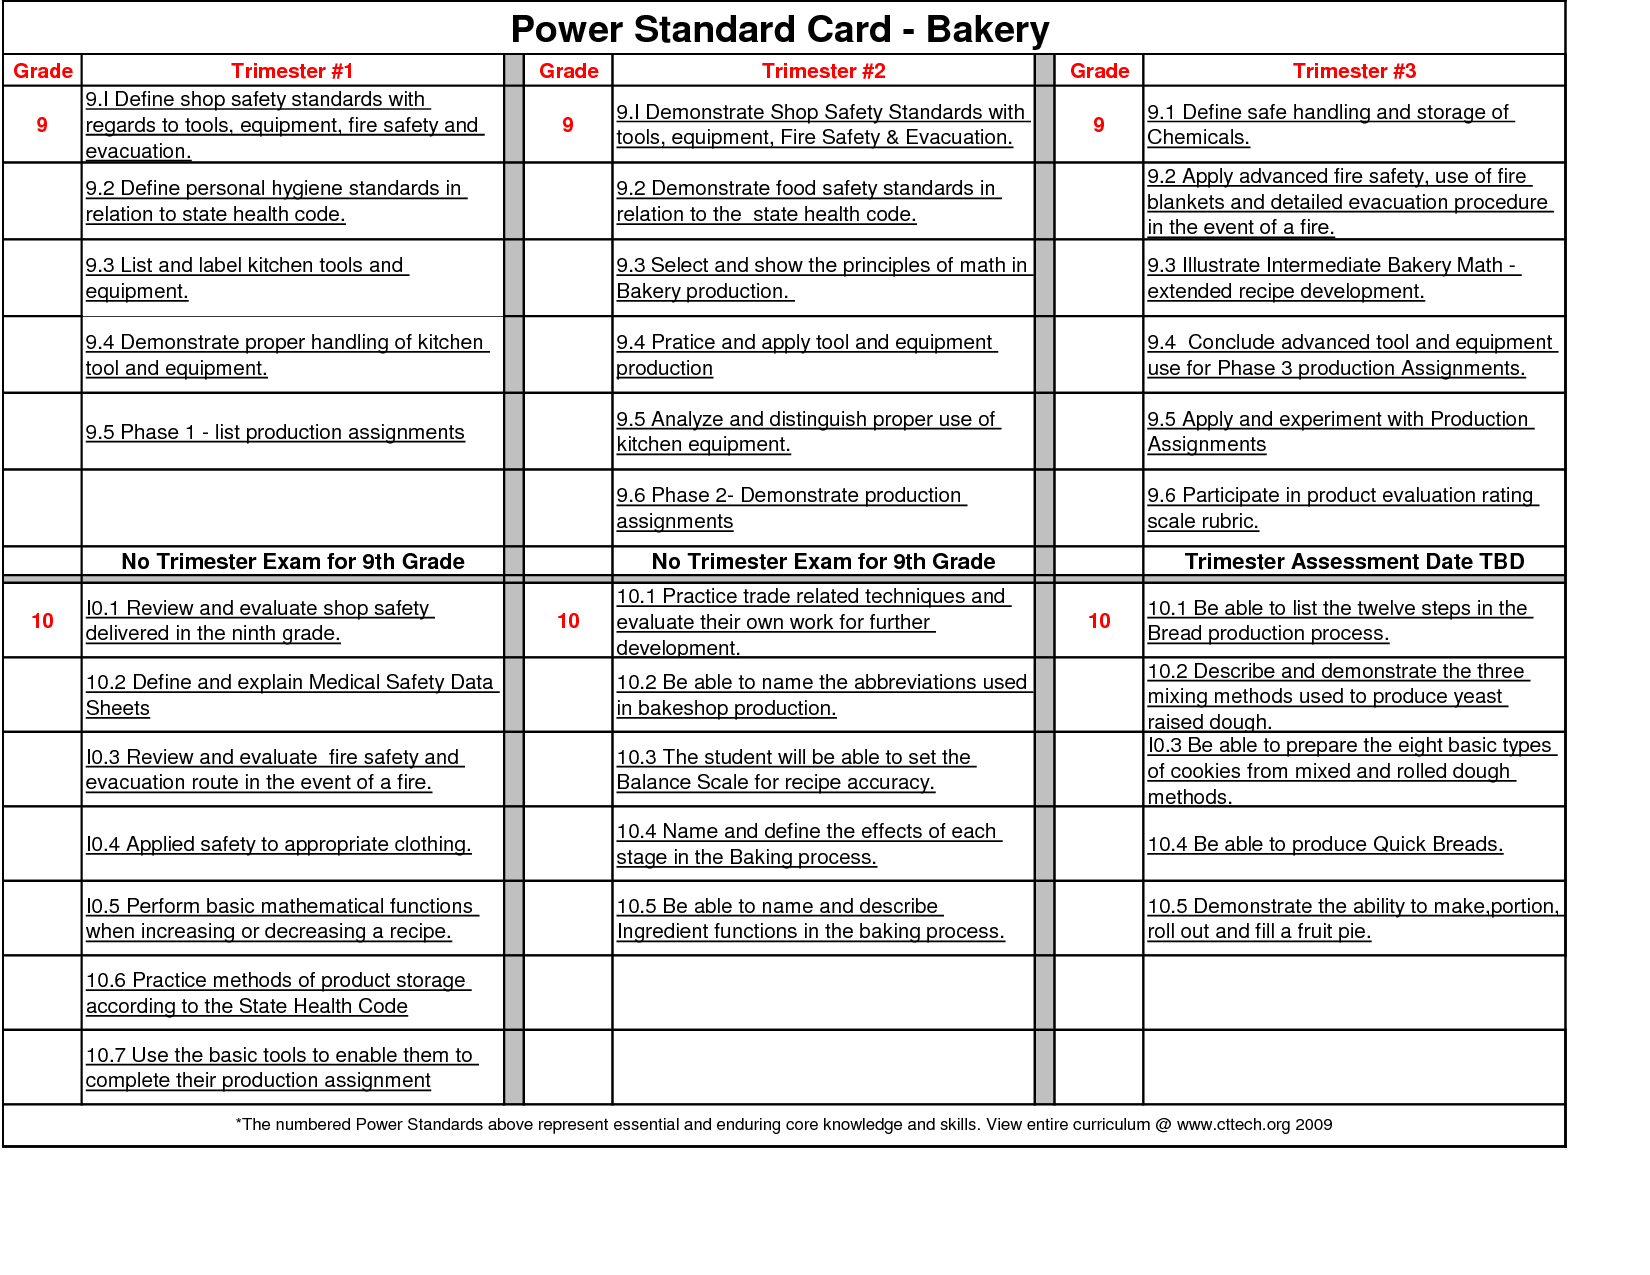 Business Plan Small Bakery Power Standard Card cakepins.com ...